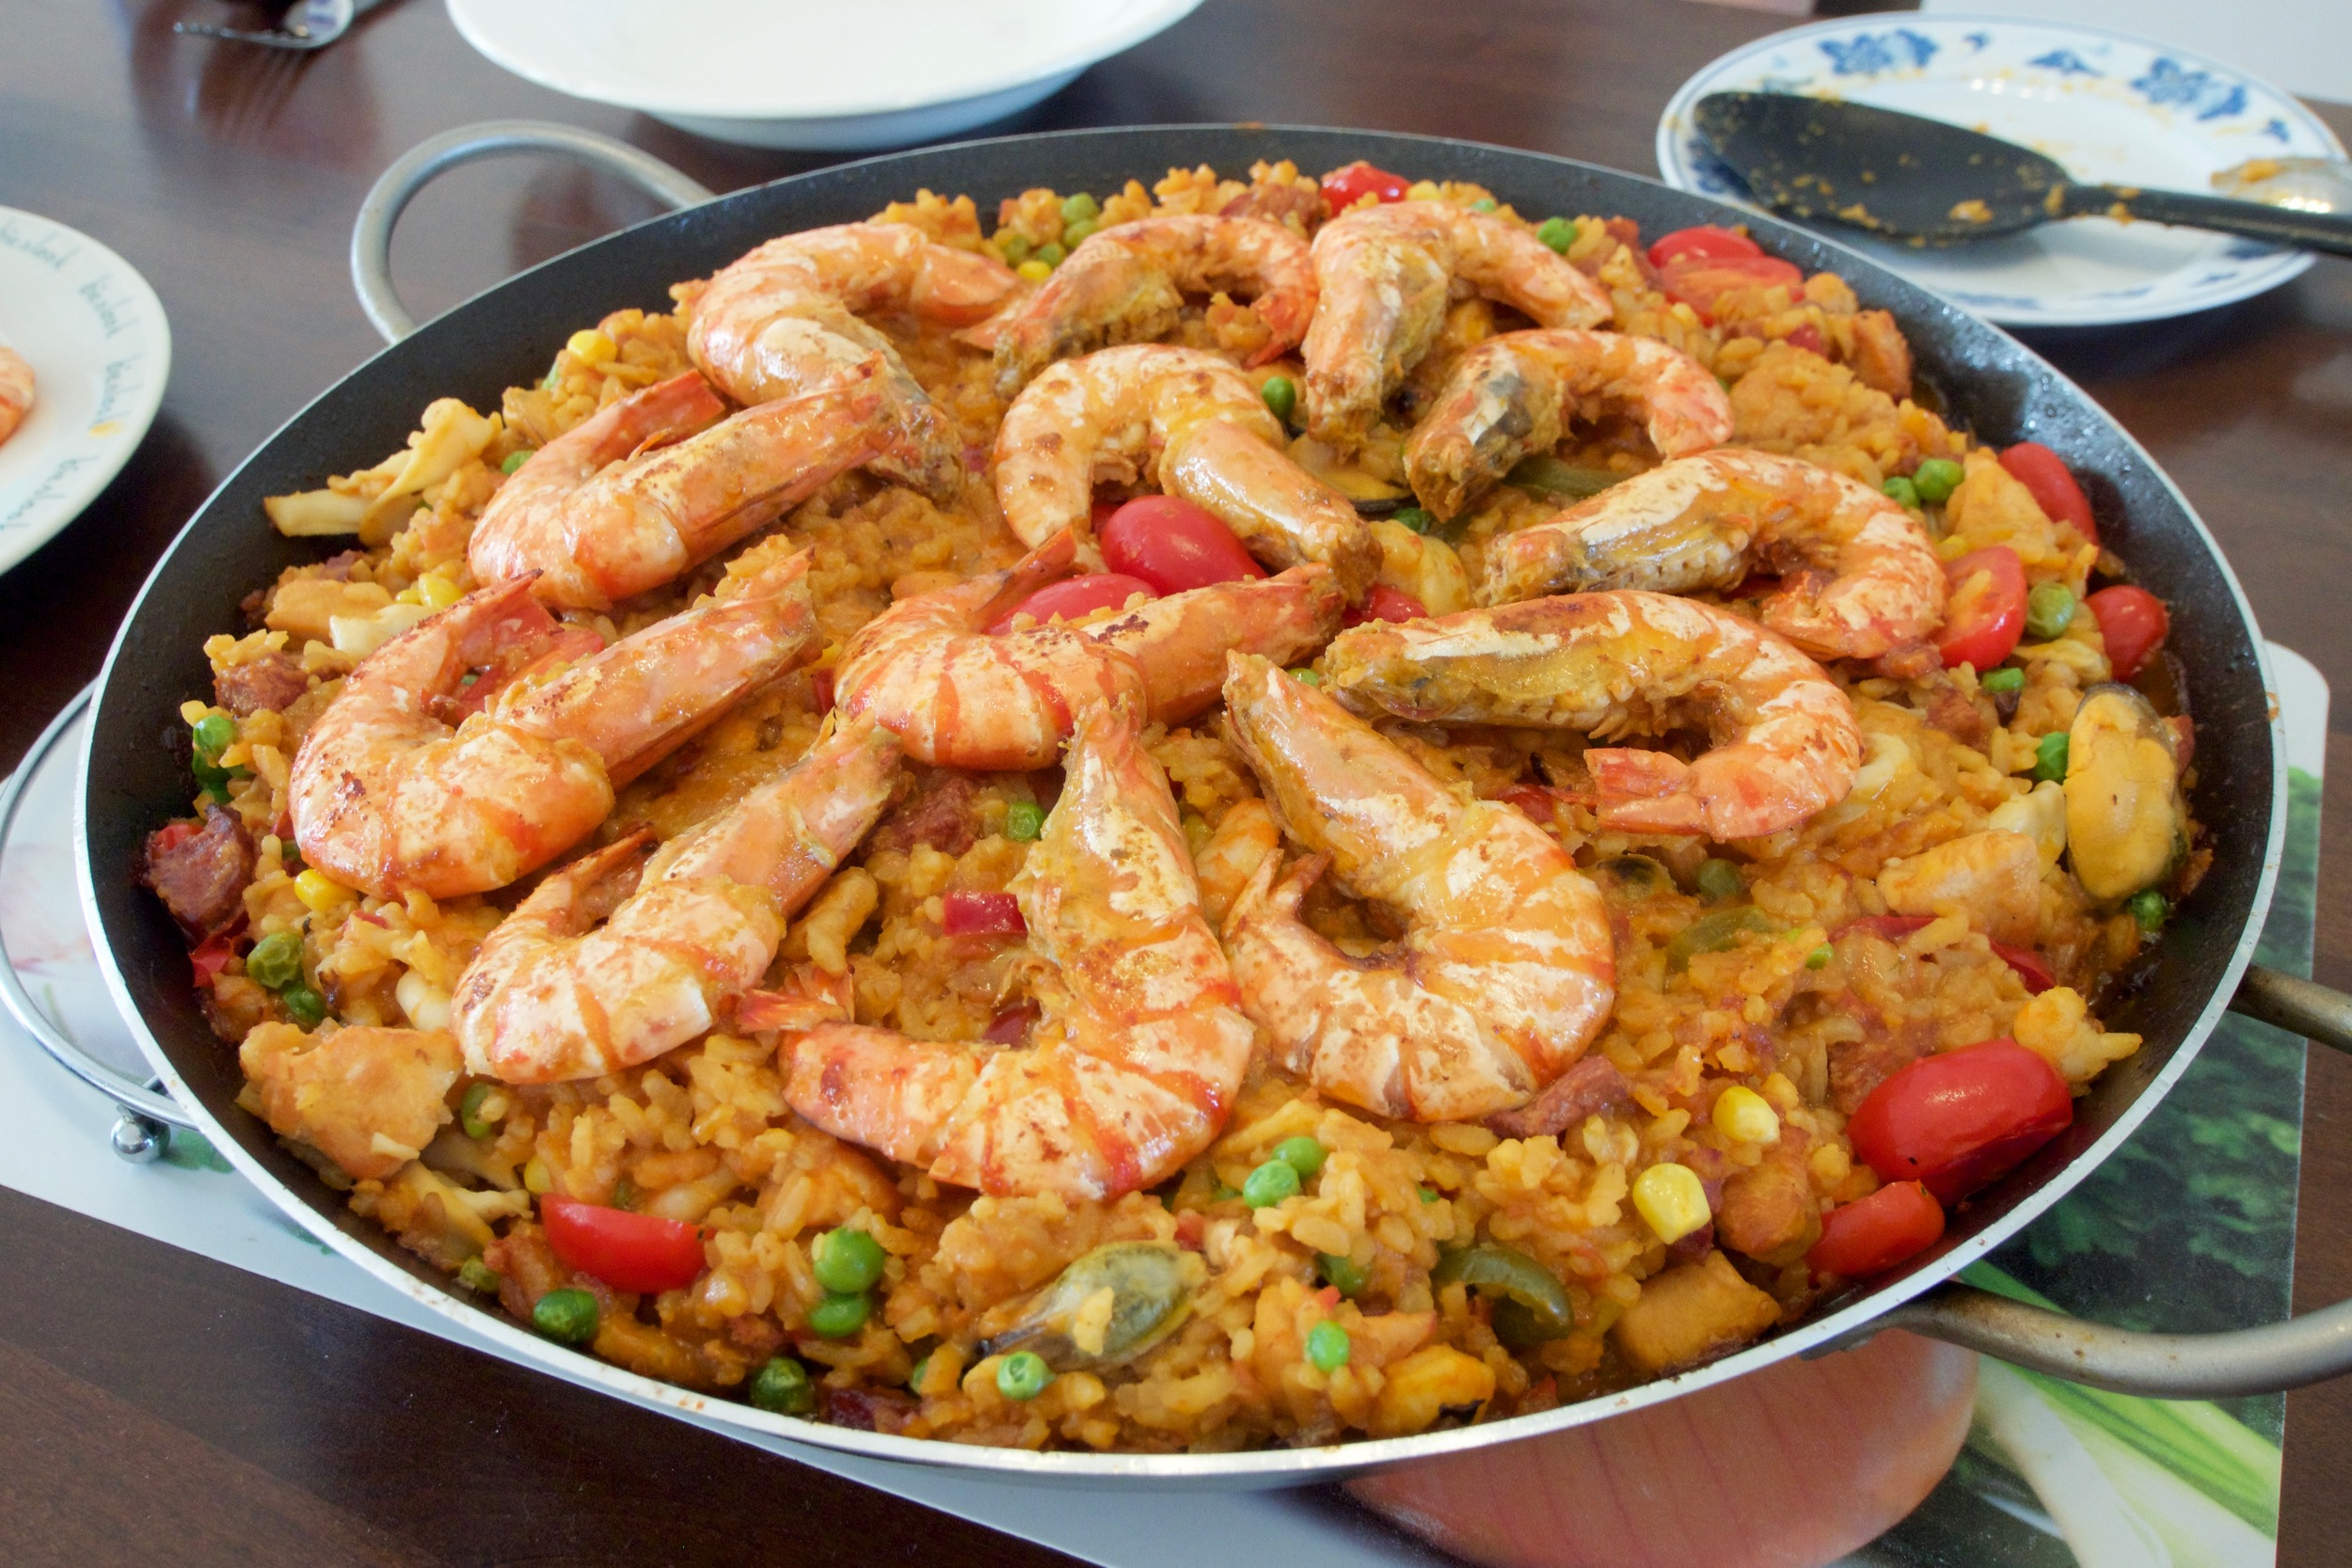 Homemade Paella with lots of seafood